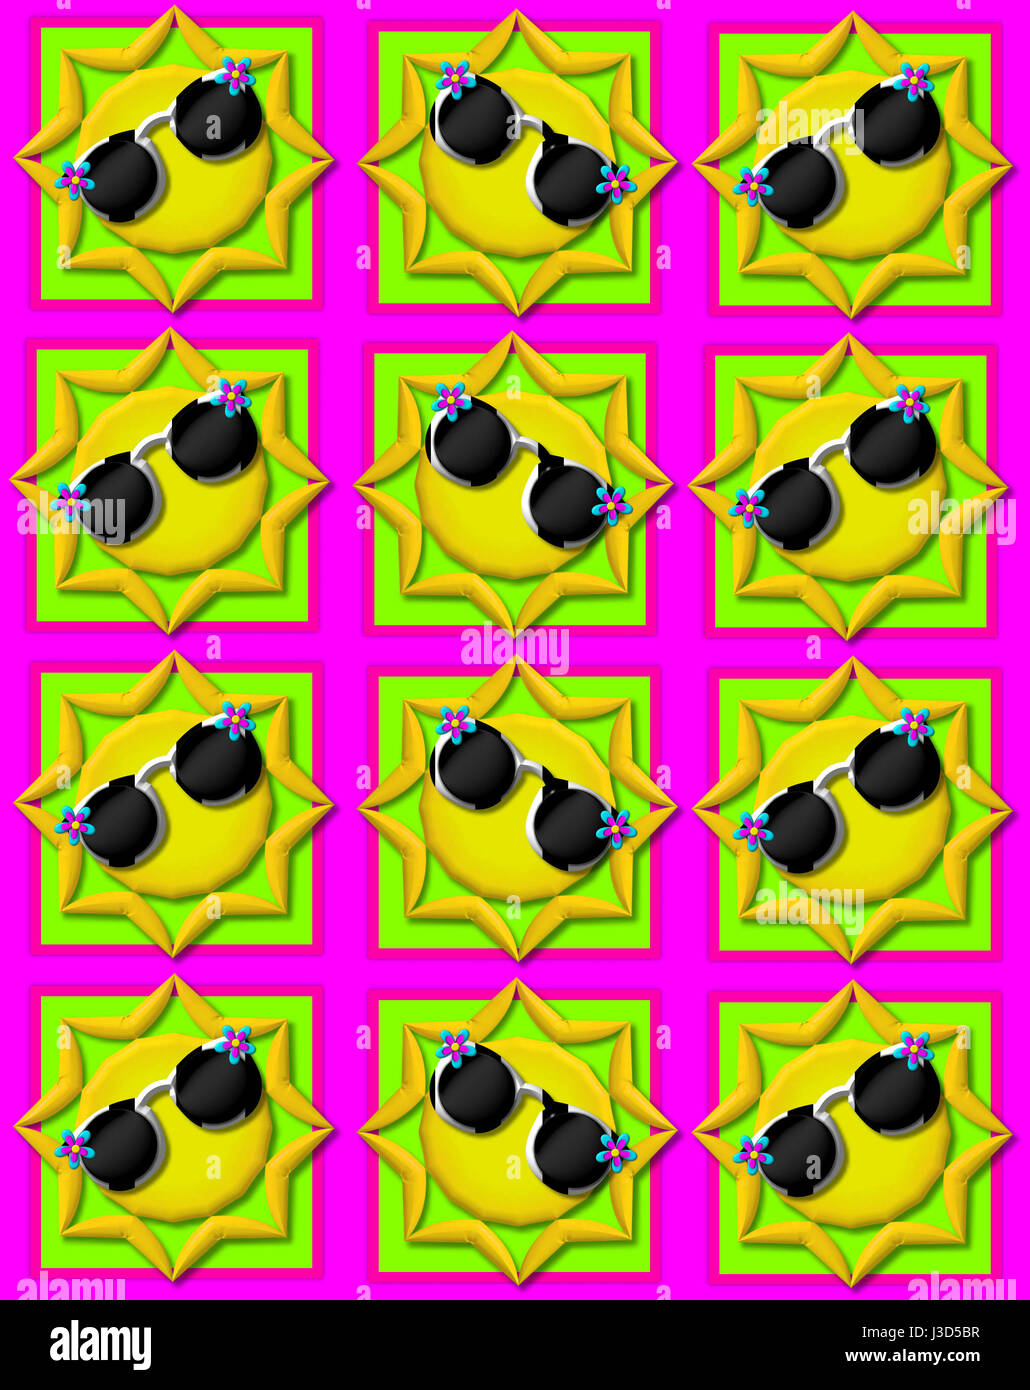 Hot pink background is decorated with colorful squares.  Squares are topped with yellow sun wearing sunshades. - Stock Image